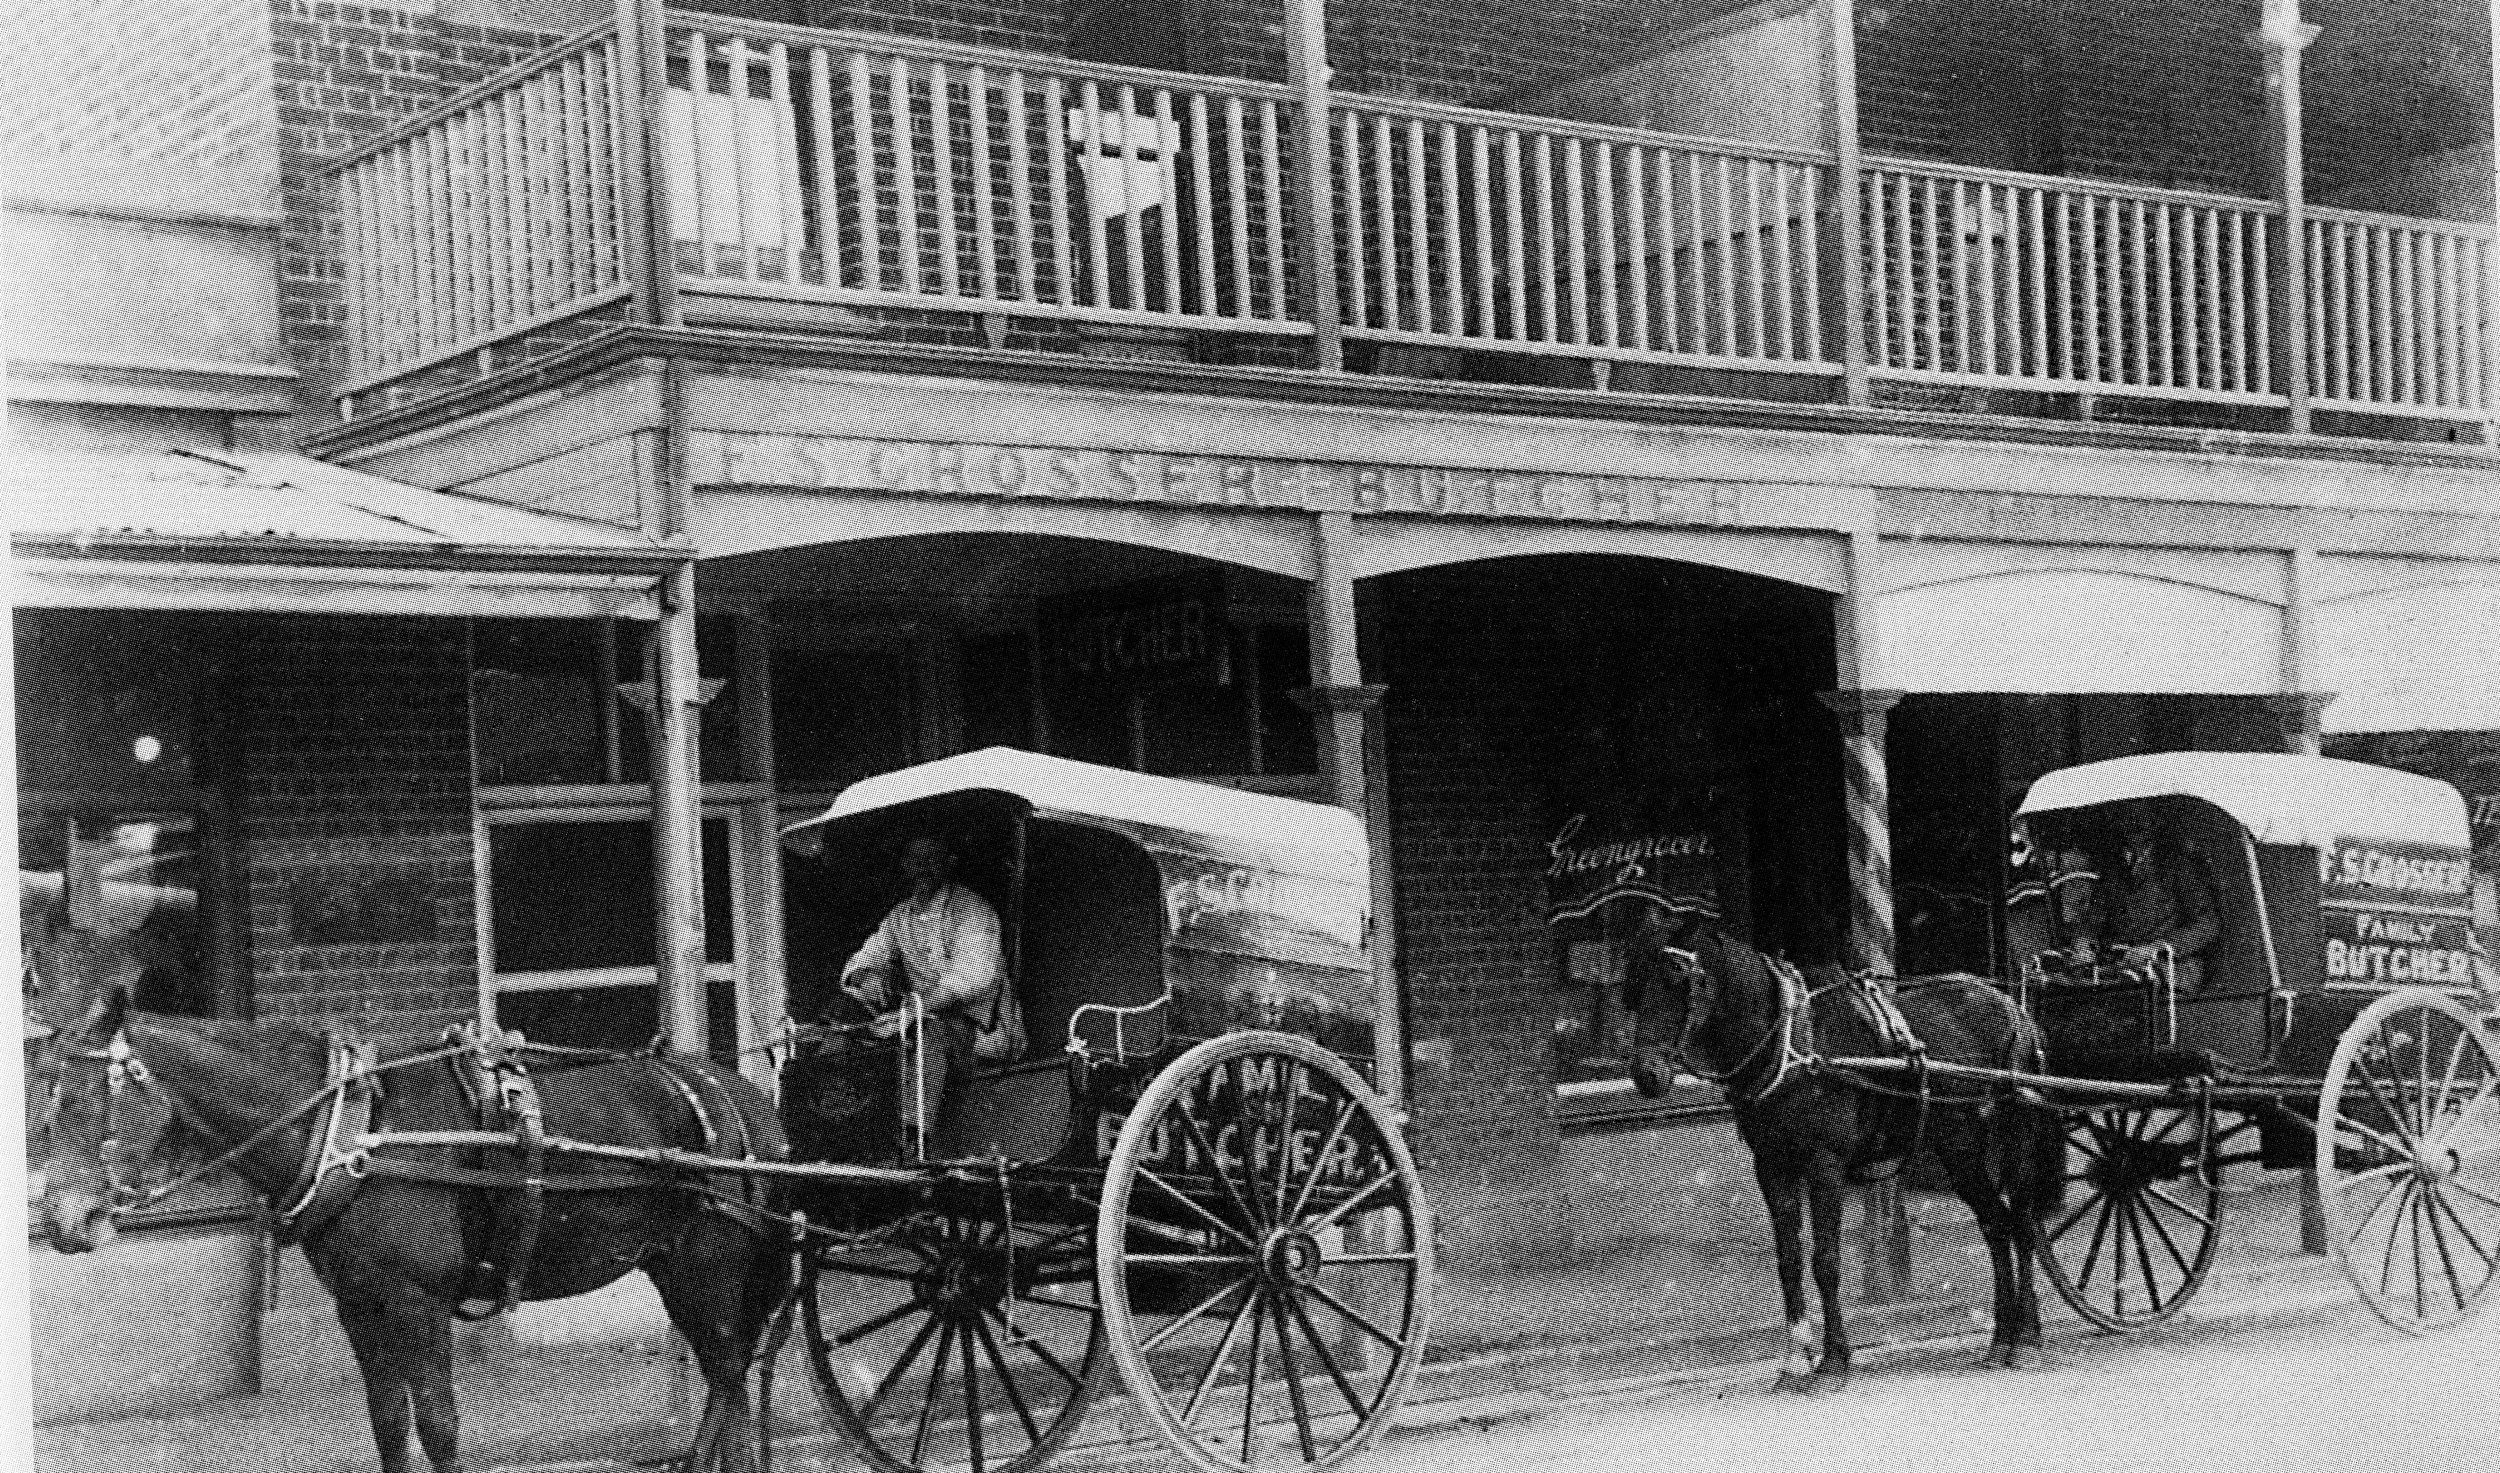 81 George St- Fred Grosser Butcher Shop and delivery carts, Battye library 67698P